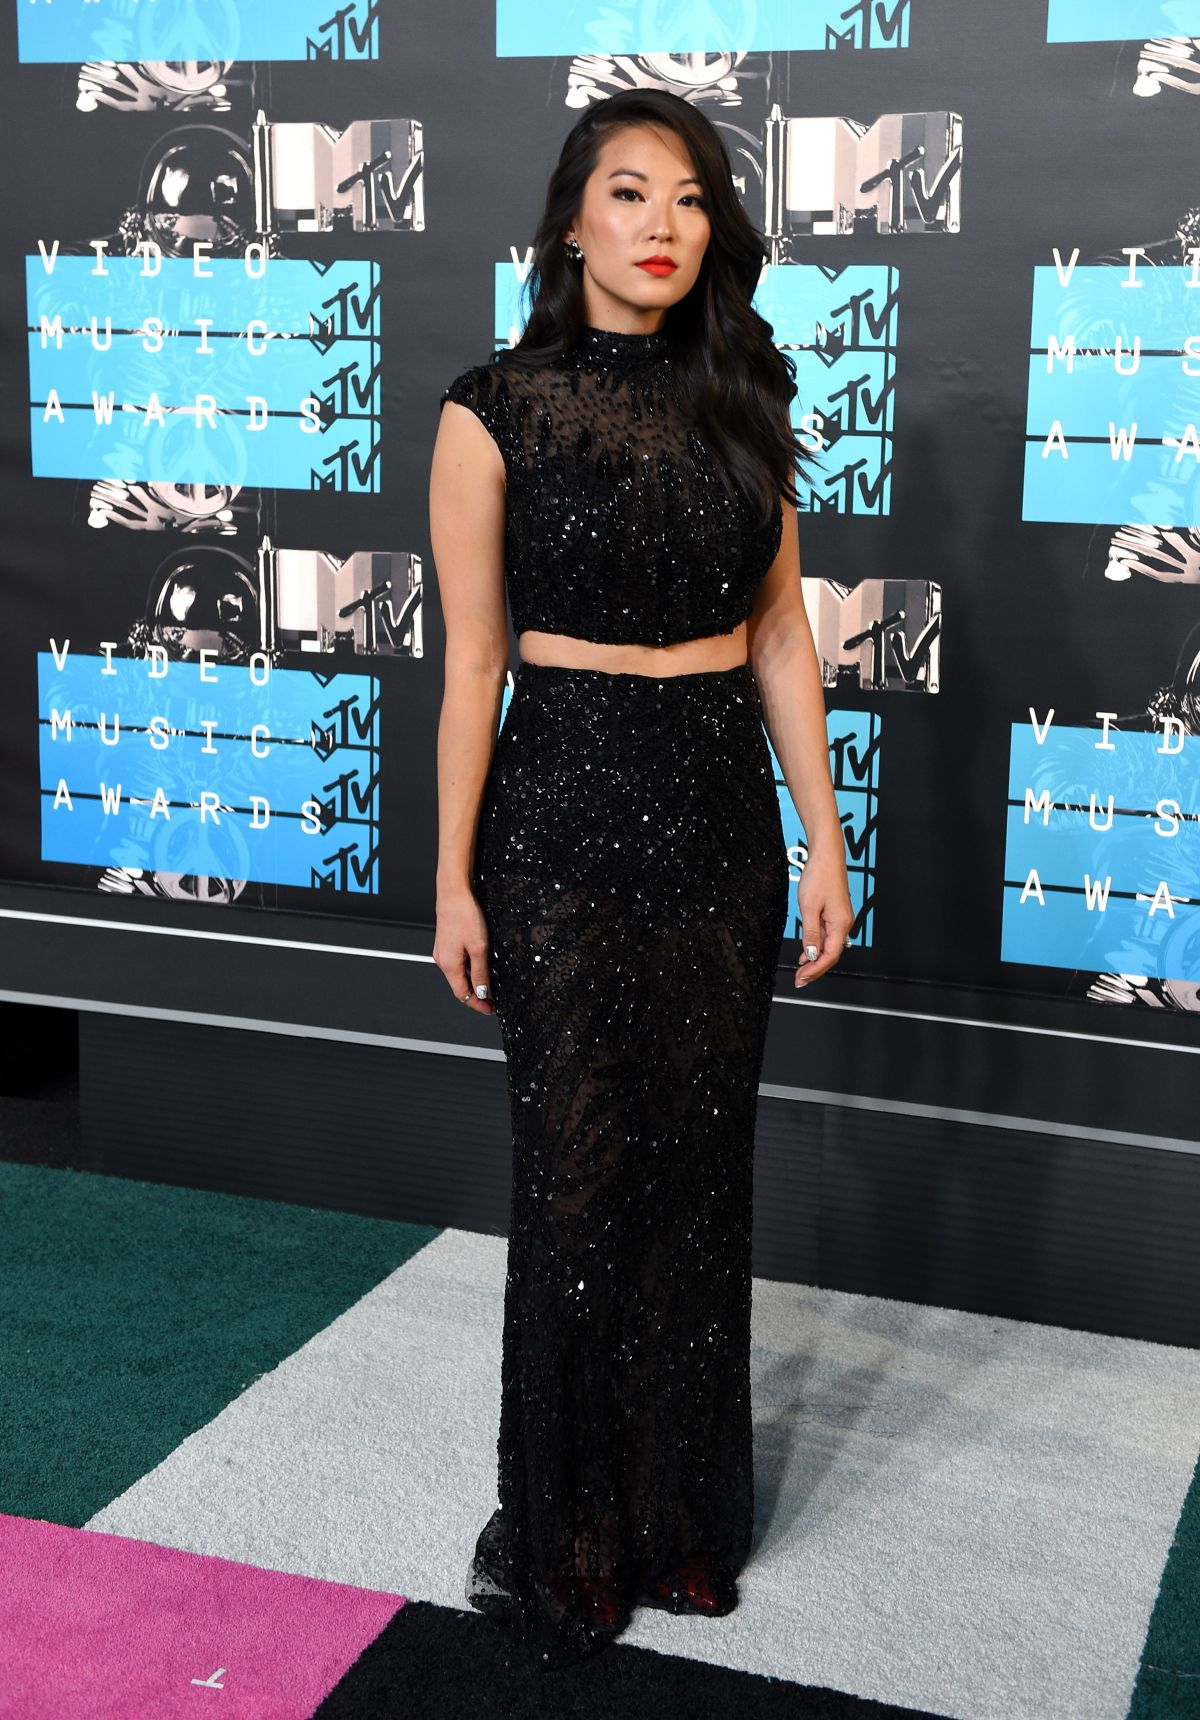 ARDEN CHO at MTV Video Music Awards 2015 in Los Angeles